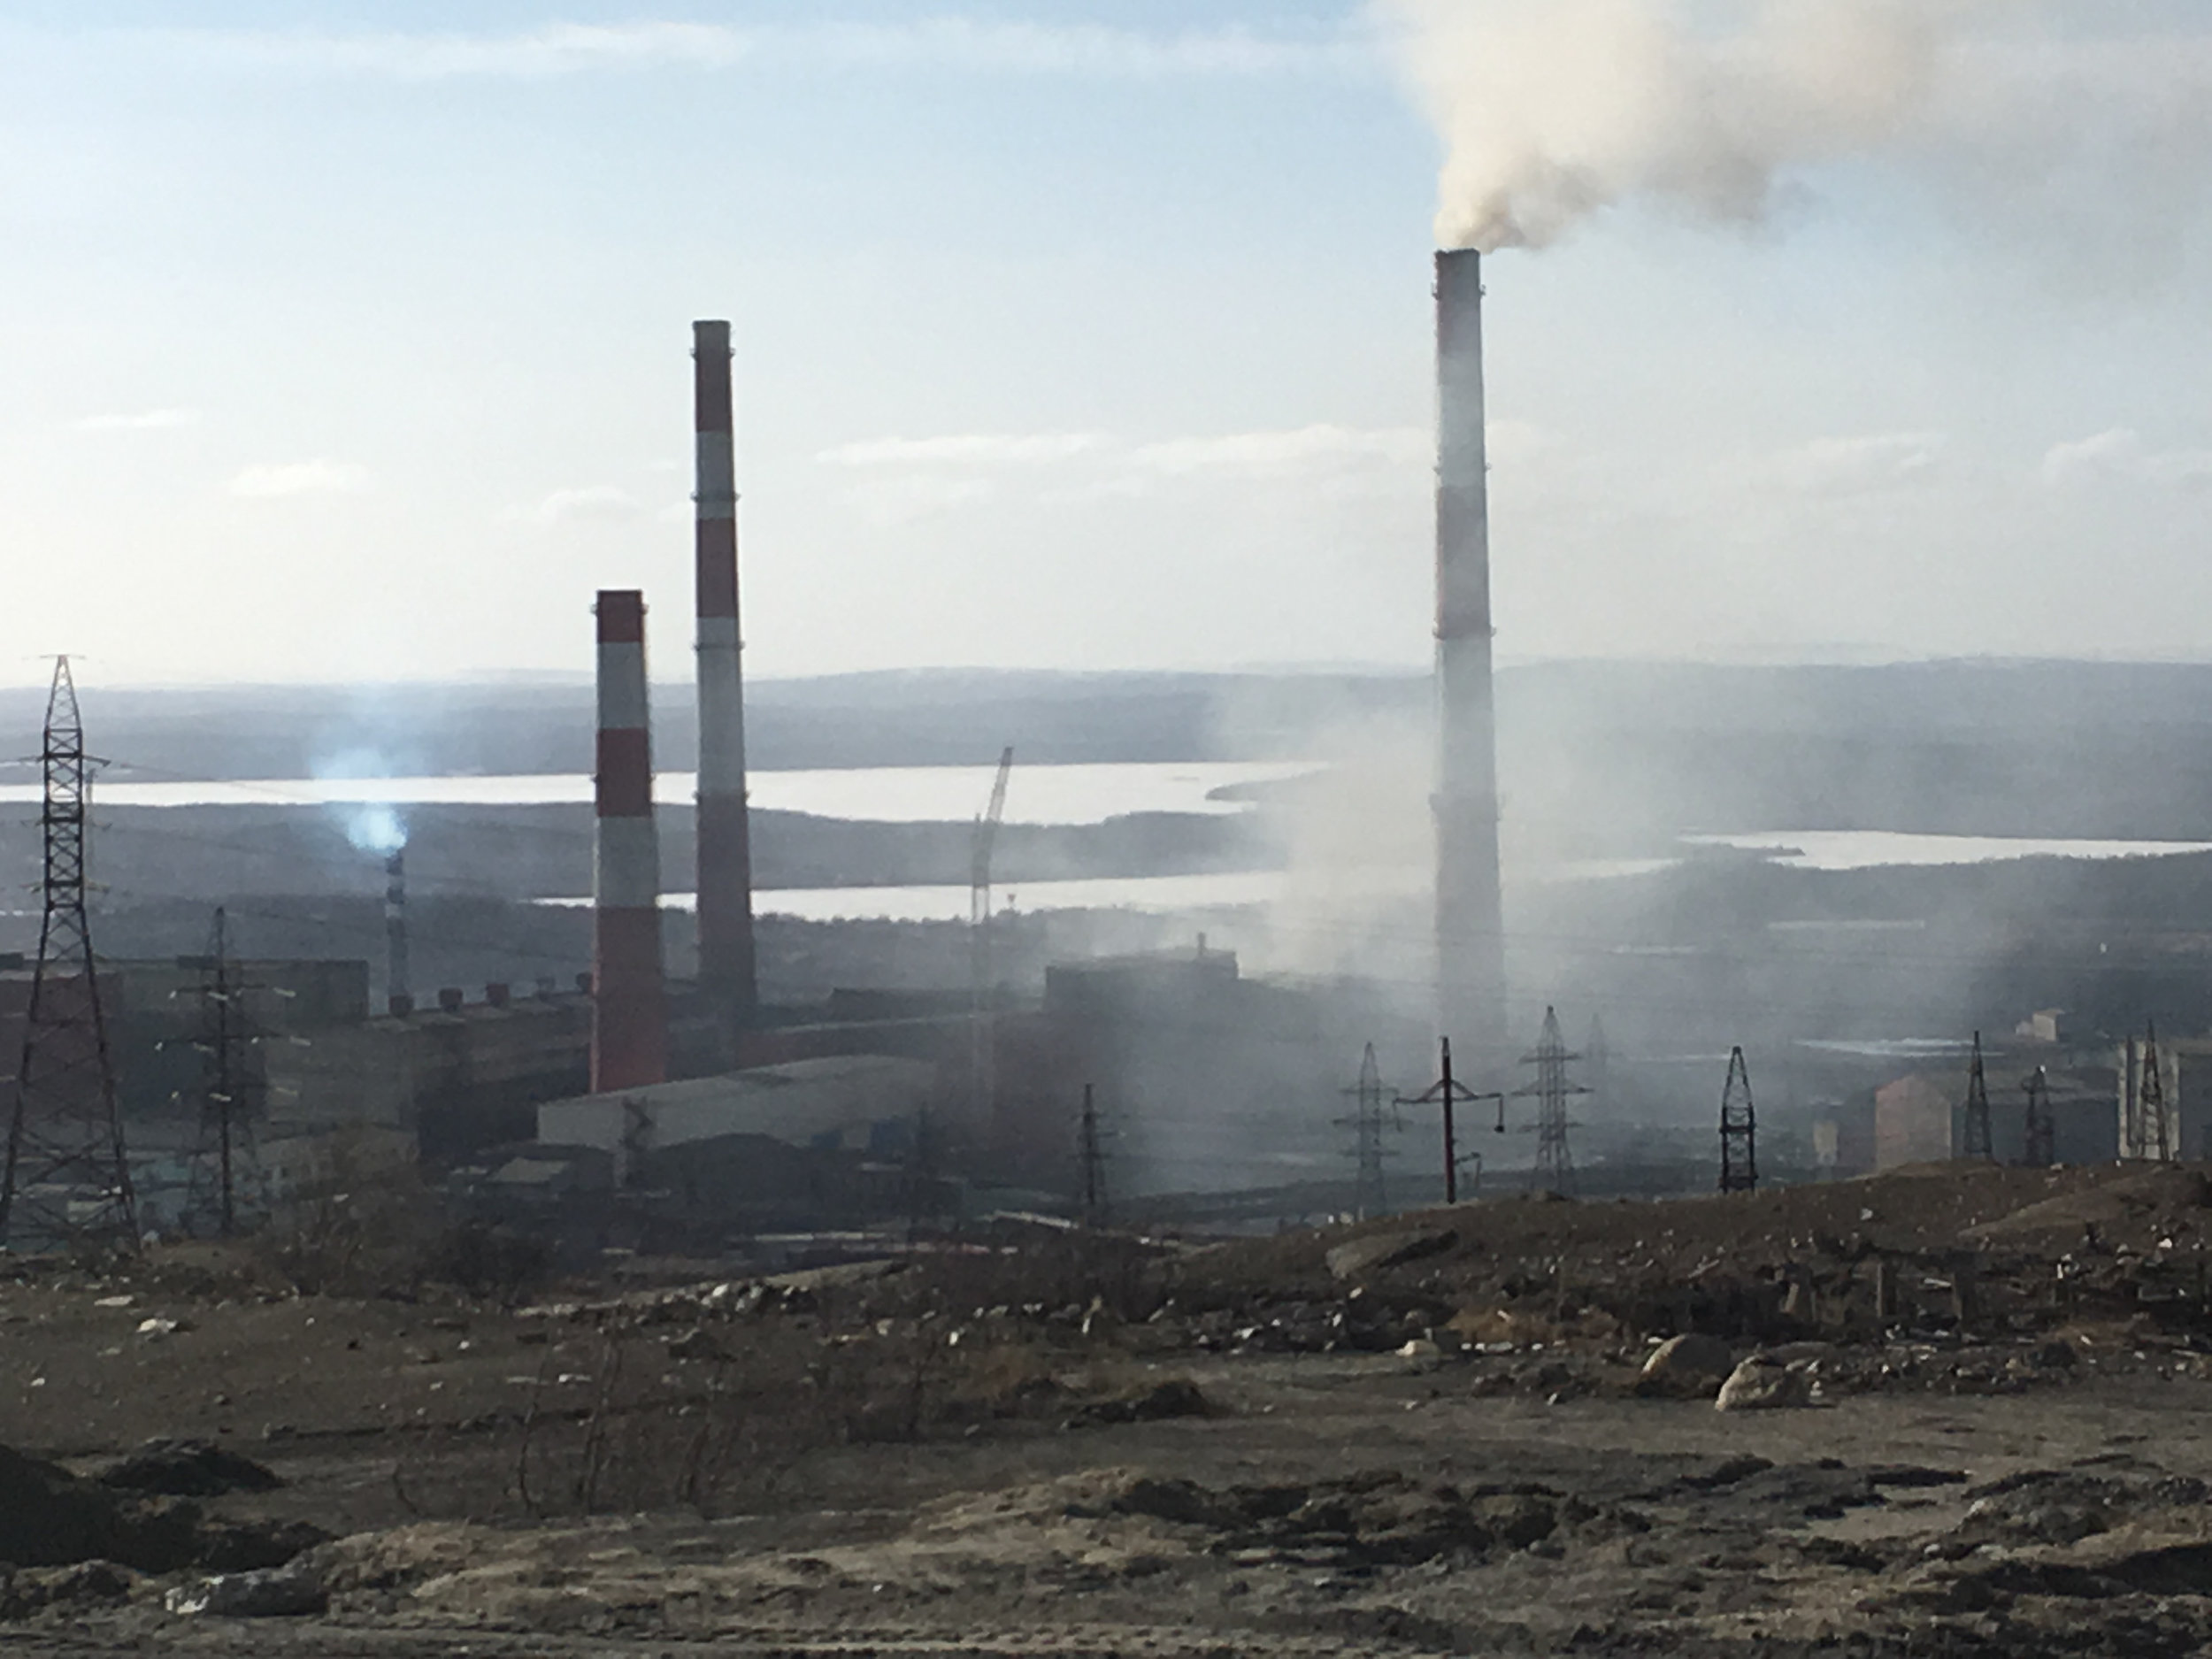 The smelting plant in Nikel is so old, the pollution billows out of the plant itself, in addition to the smokestack.